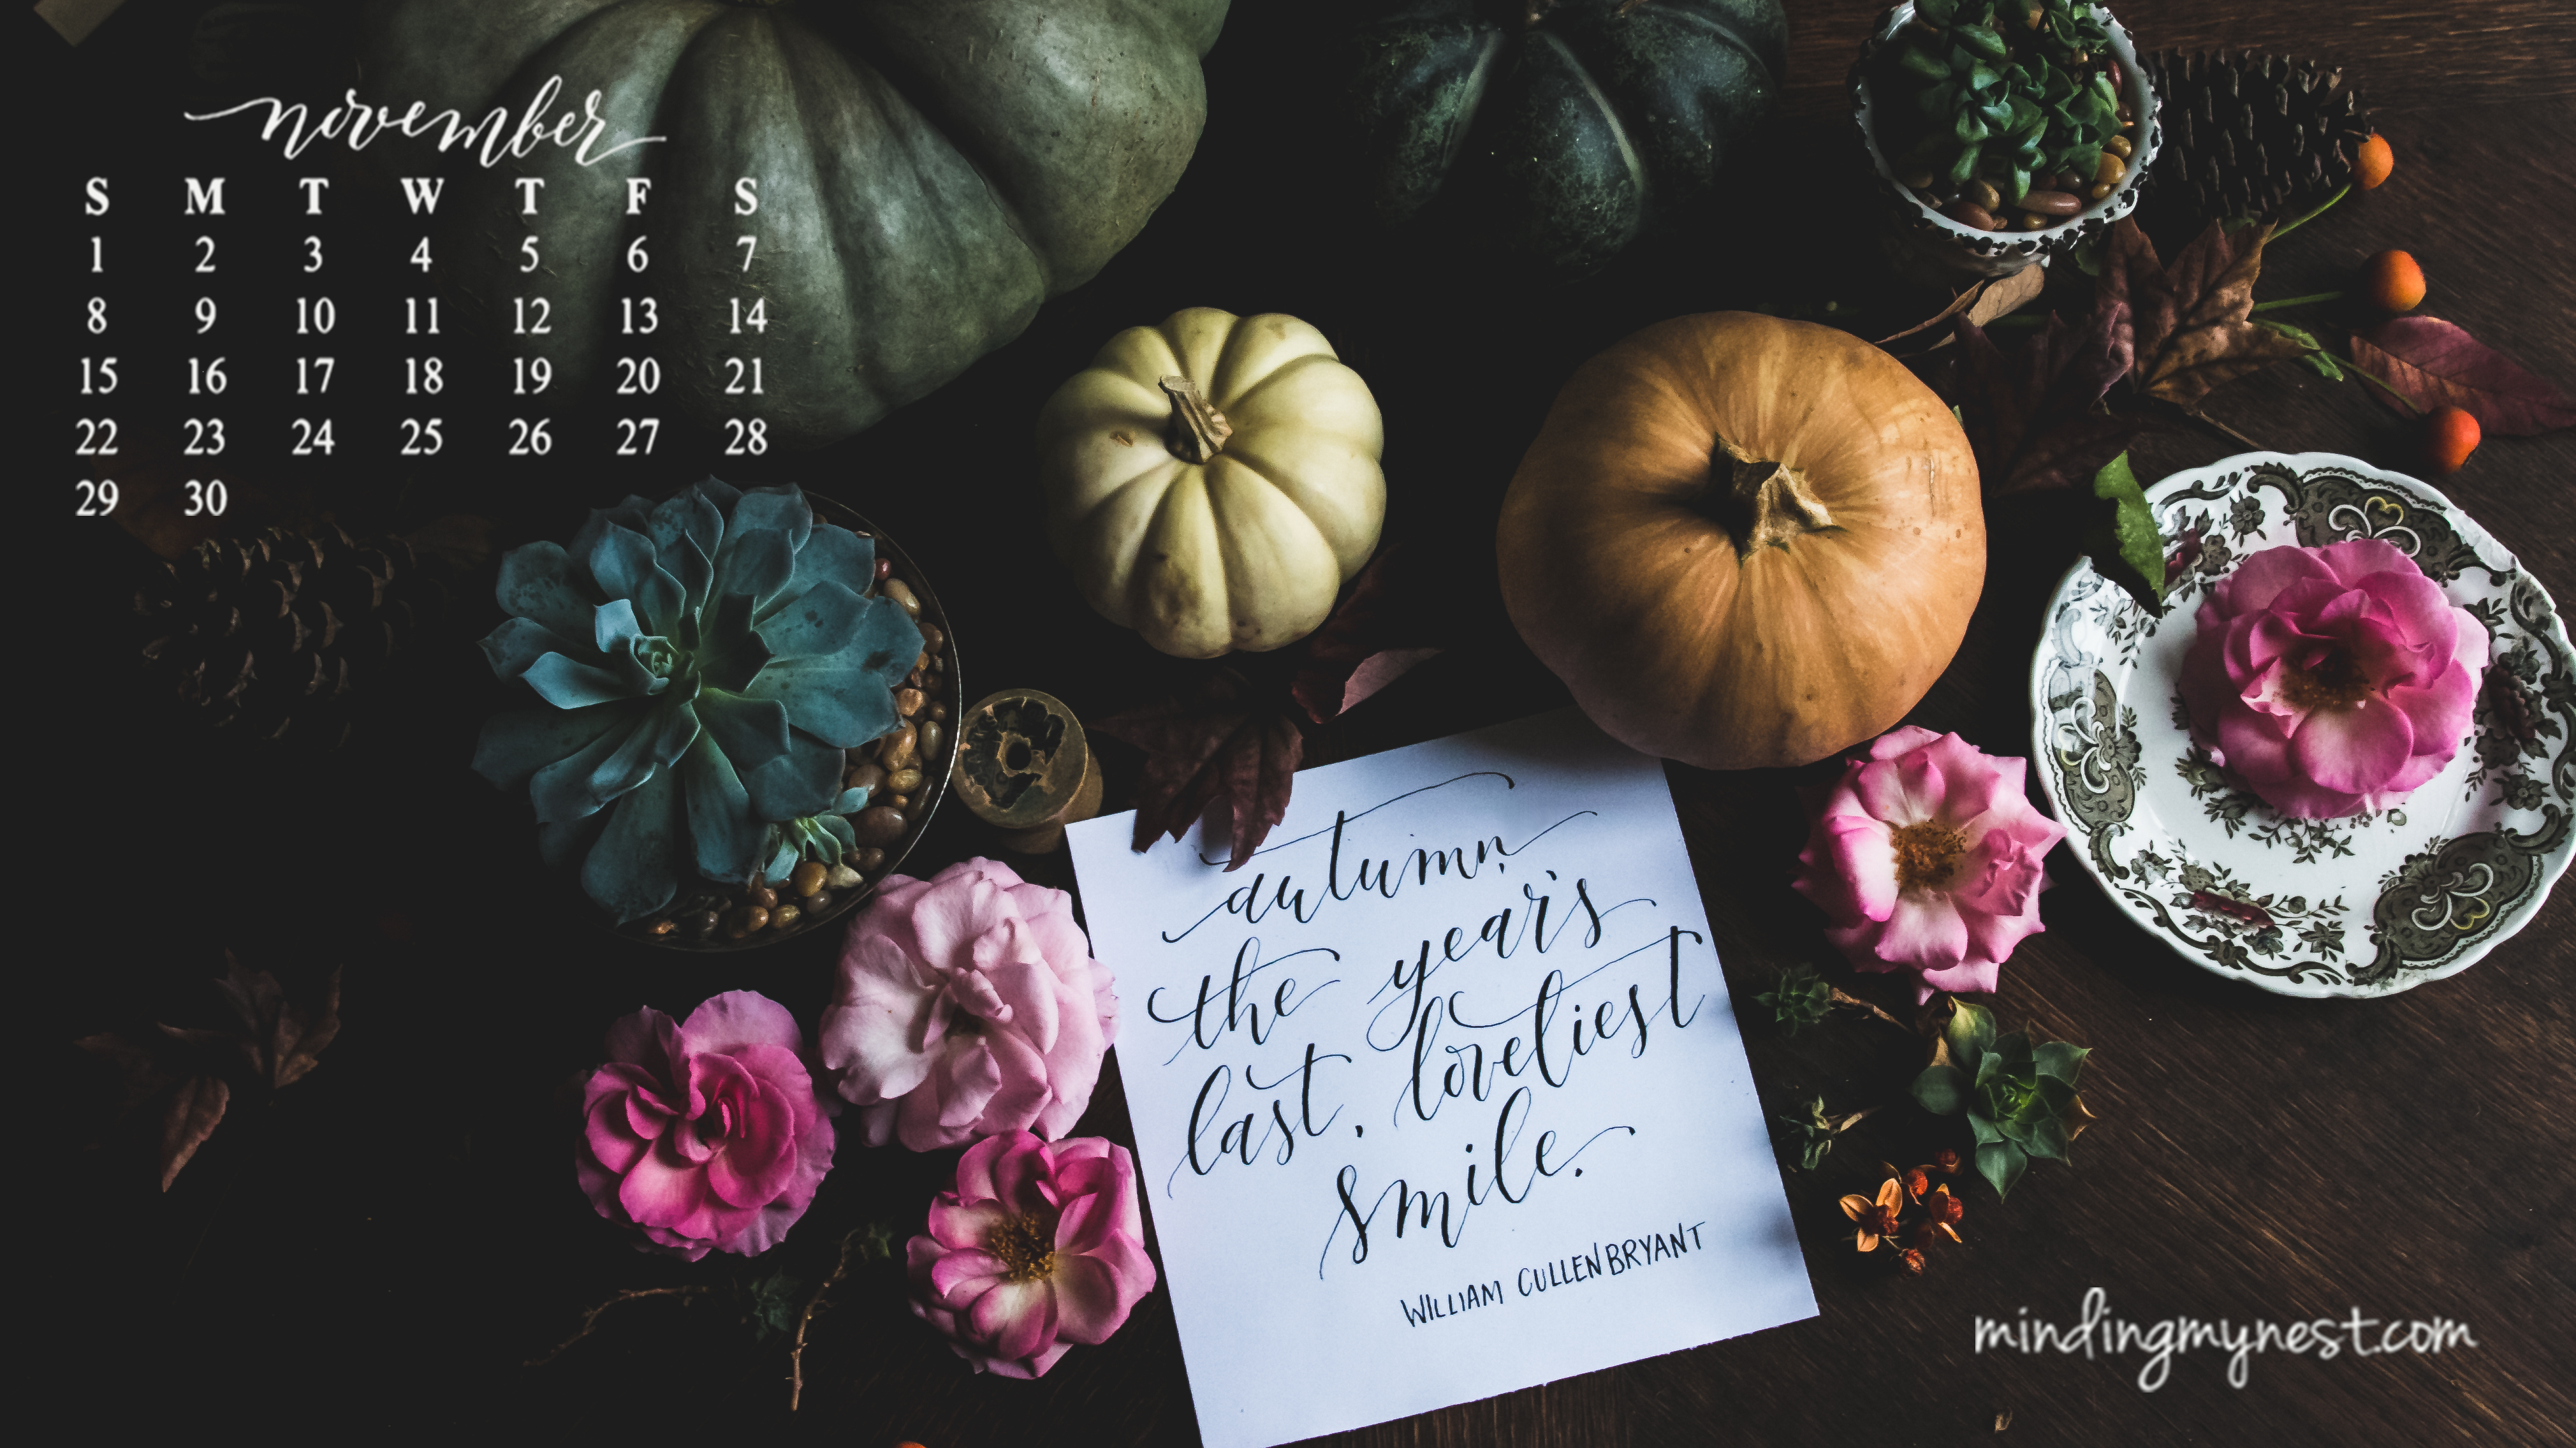 Free Desktop Calendar Wallpaper November : Desktop calendars minding my nest